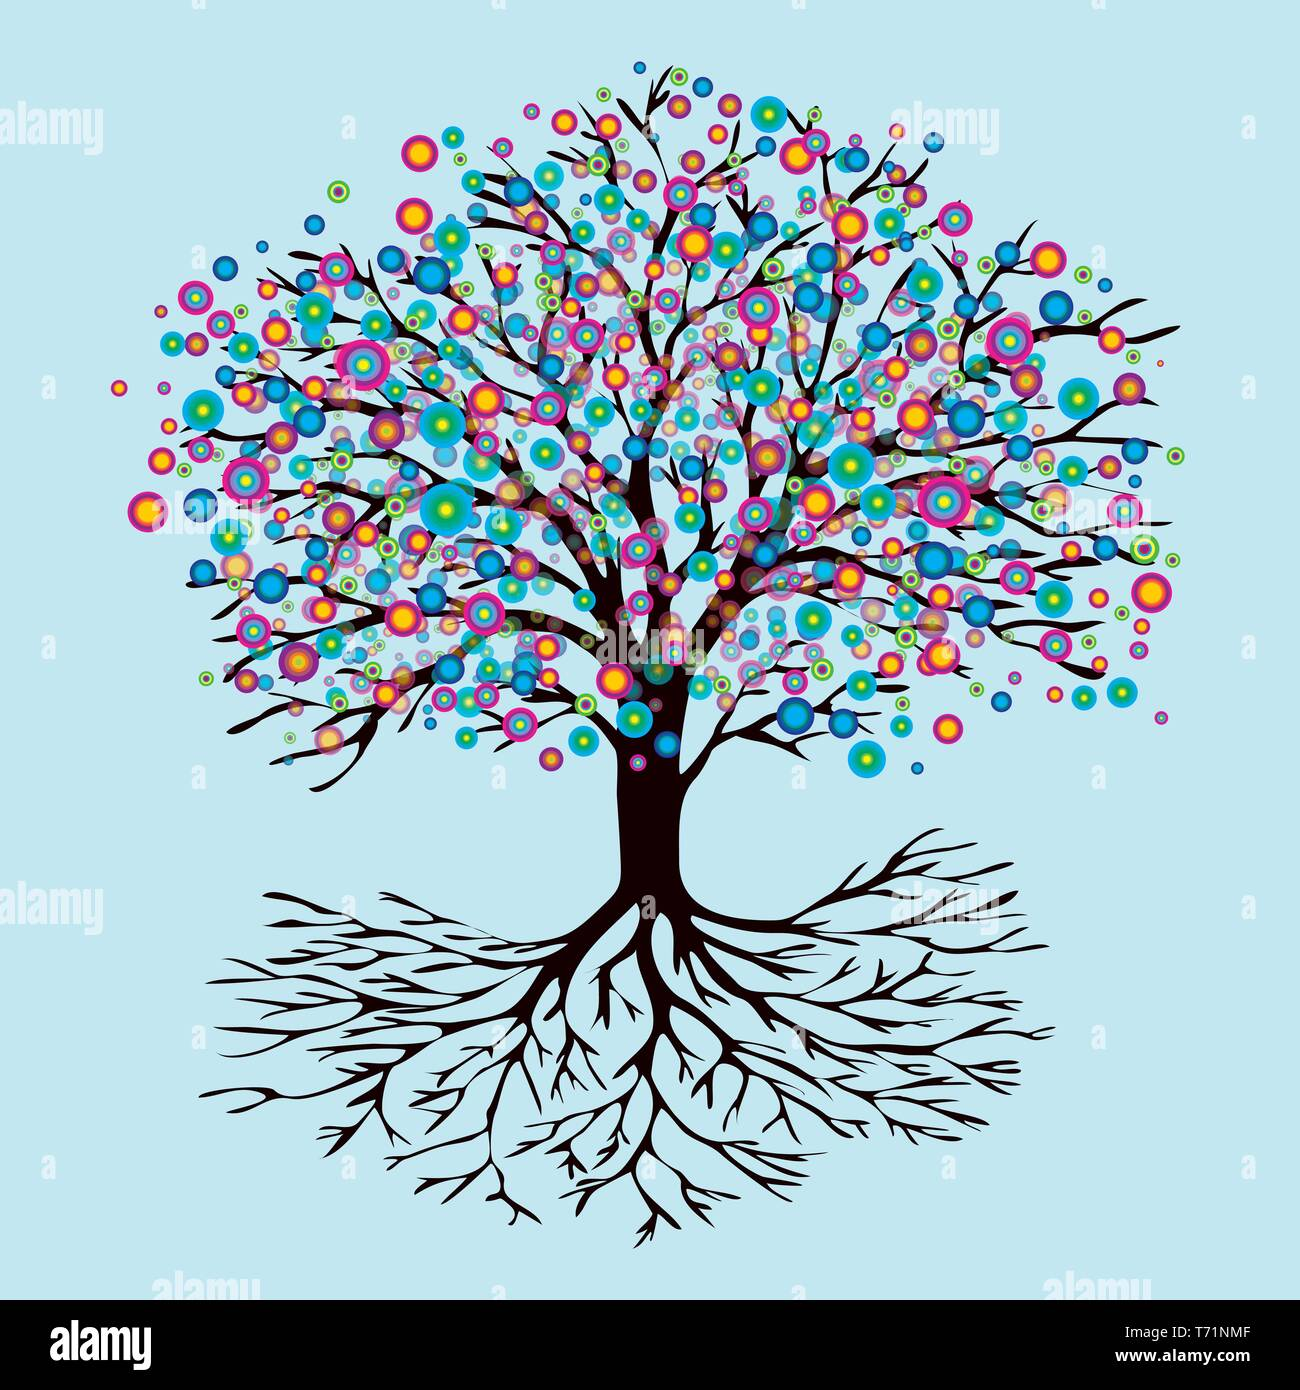 A tree of life with abstract rainbow flowers - Stock Image